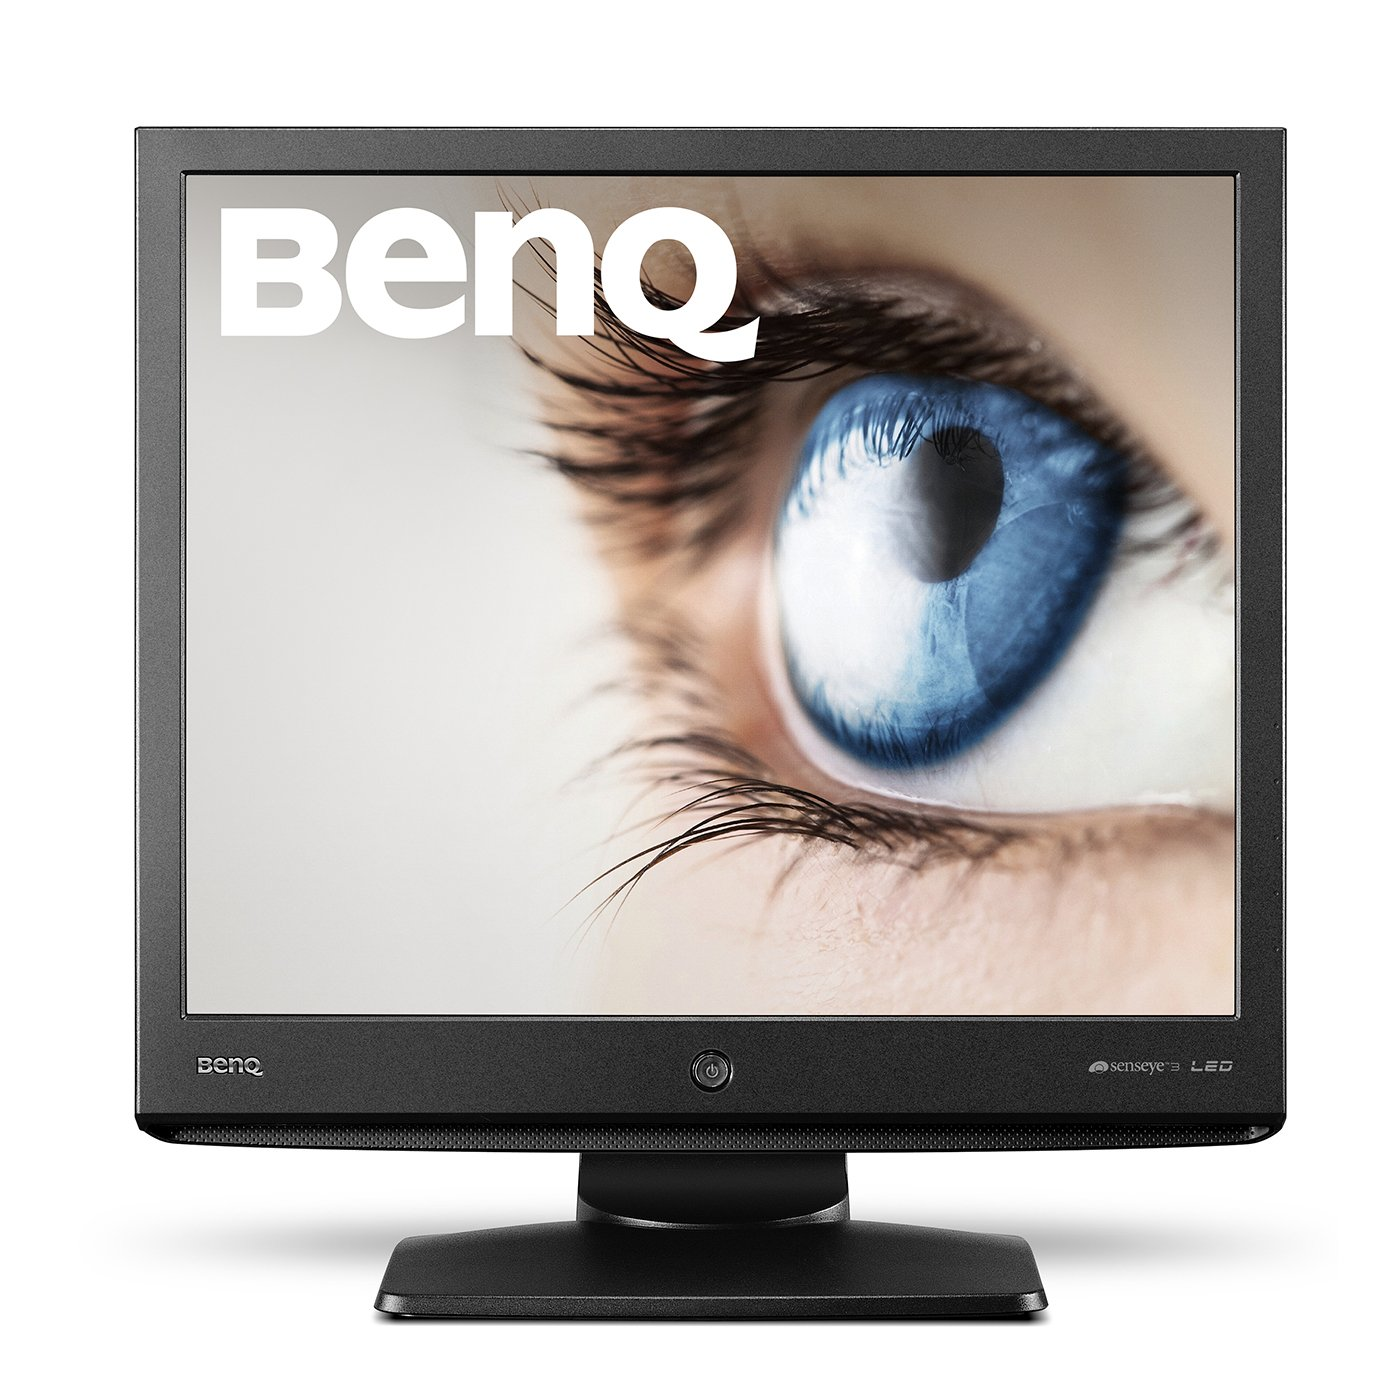 BenQ BL912 LED TN 19 Inch Monitor with 5 ms Response Time and 1280 x 1024  Display Resolution - Black: Amazon.co.uk: Computers & Accessories